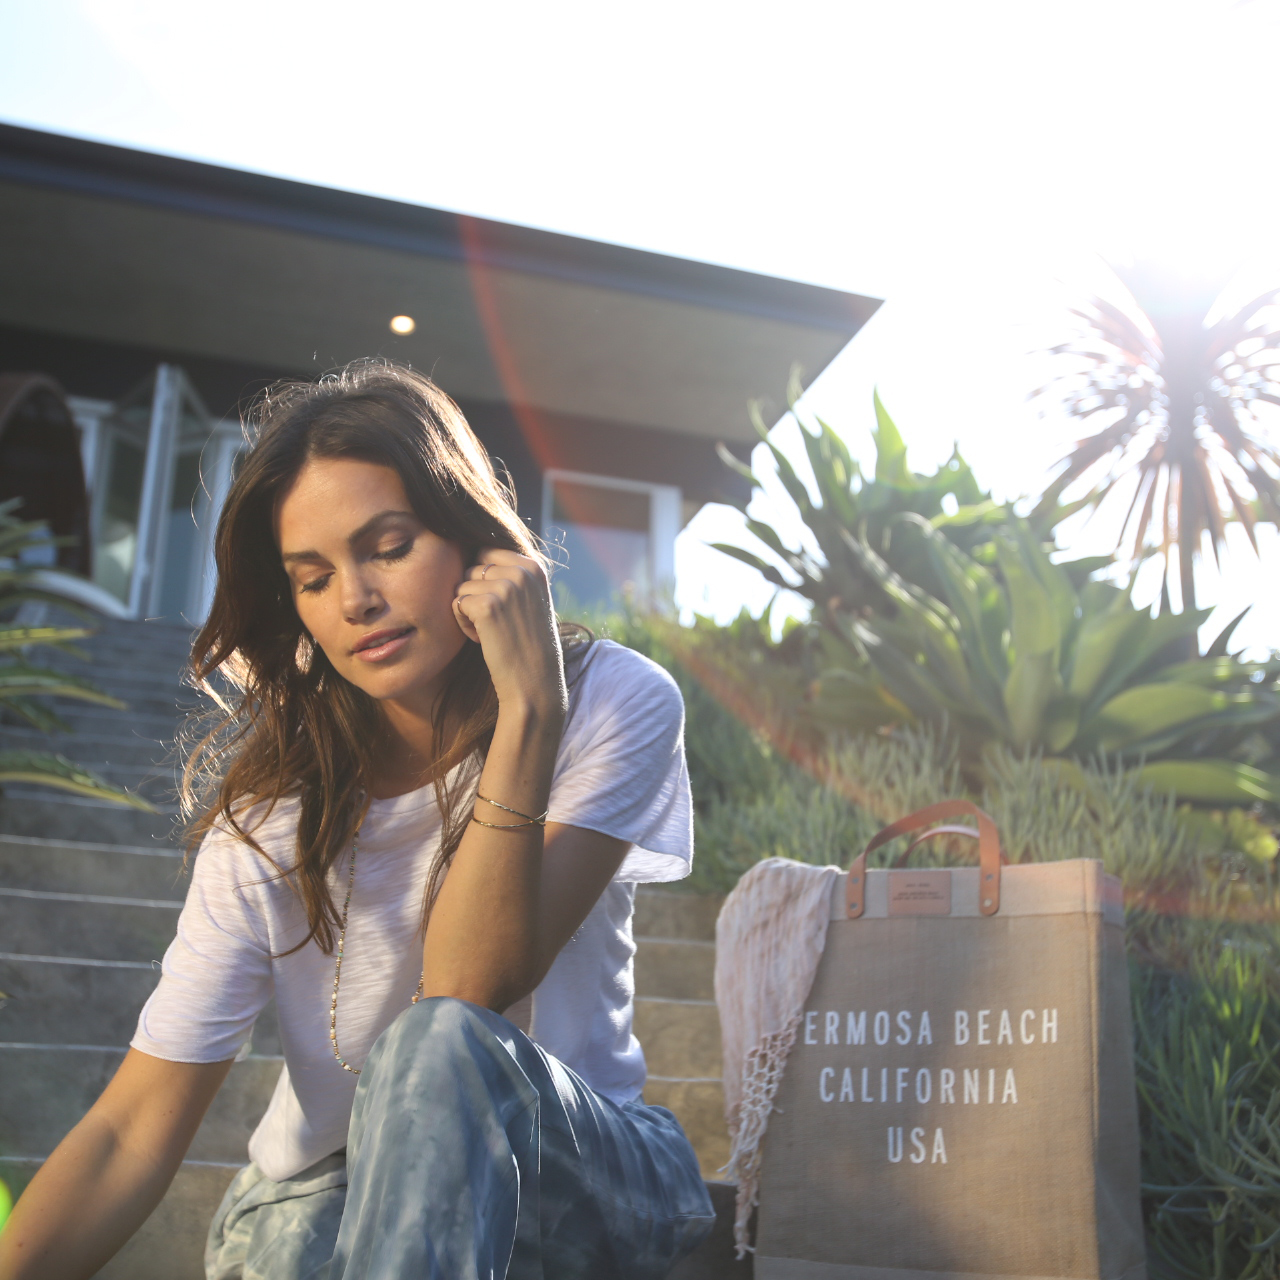 Exclusive Retailer of Apolis Hermosa Beach Market Bags